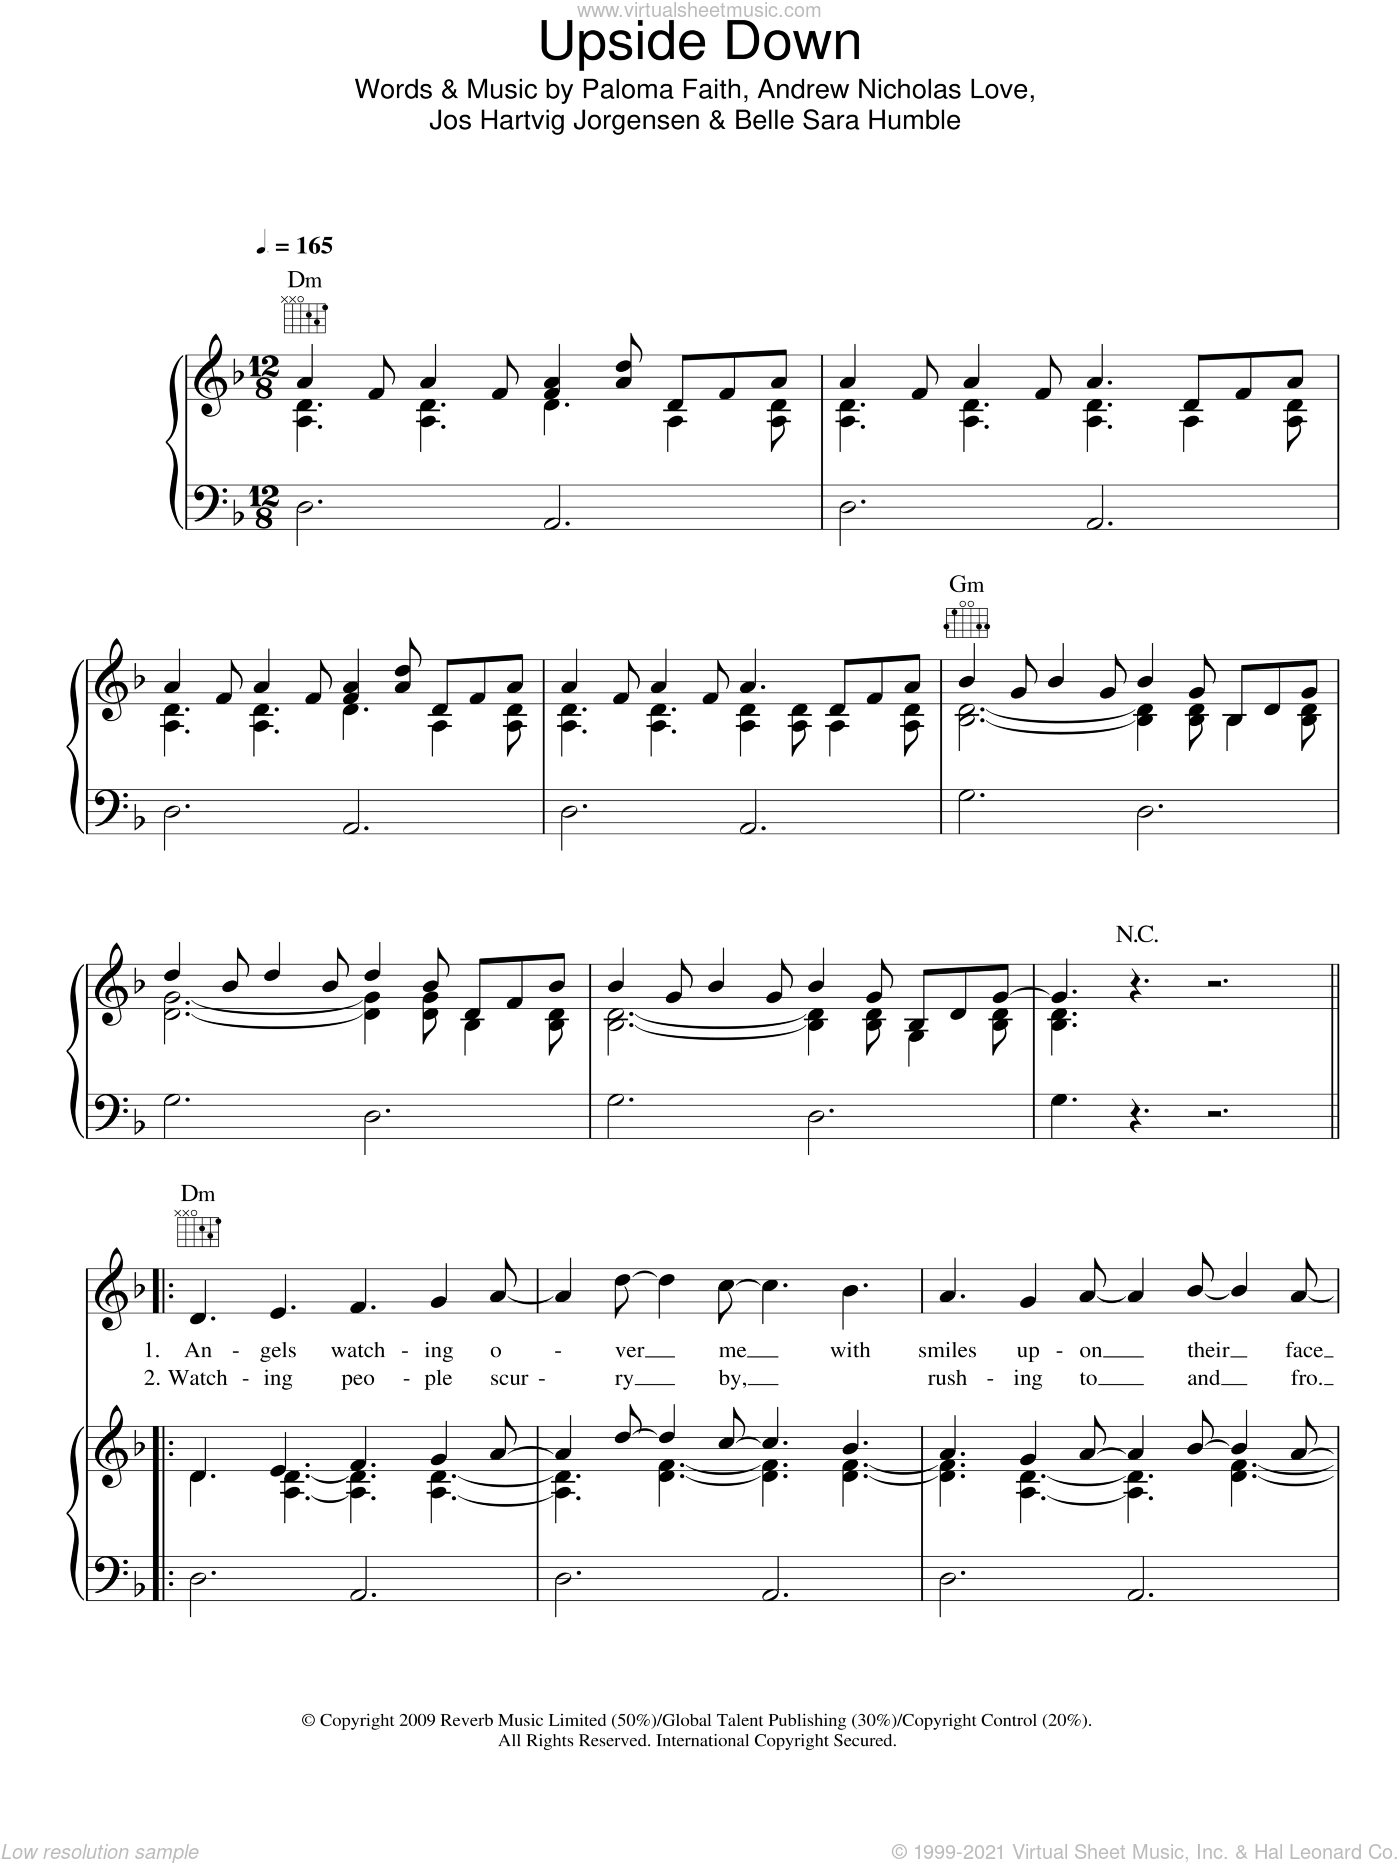 Upside Down sheet music for voice, piano or guitar by Jos Hartvig Jorgensen